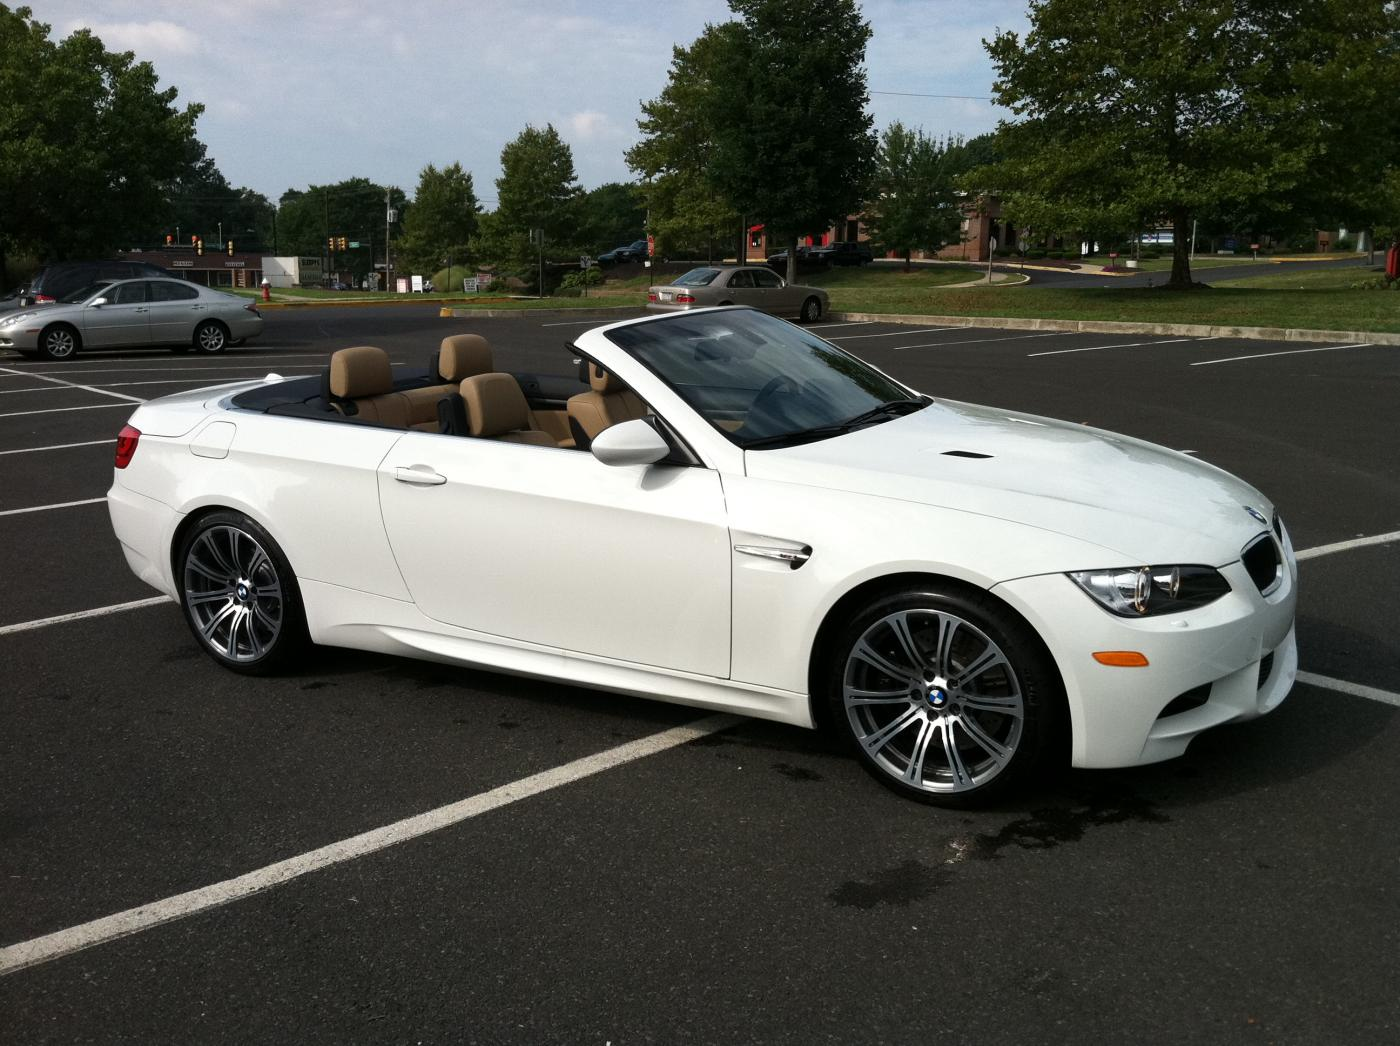 Lease takeover 2011 m3 e93 convertible alpine white with novillo beige loaded for White bmw with red interior for sale